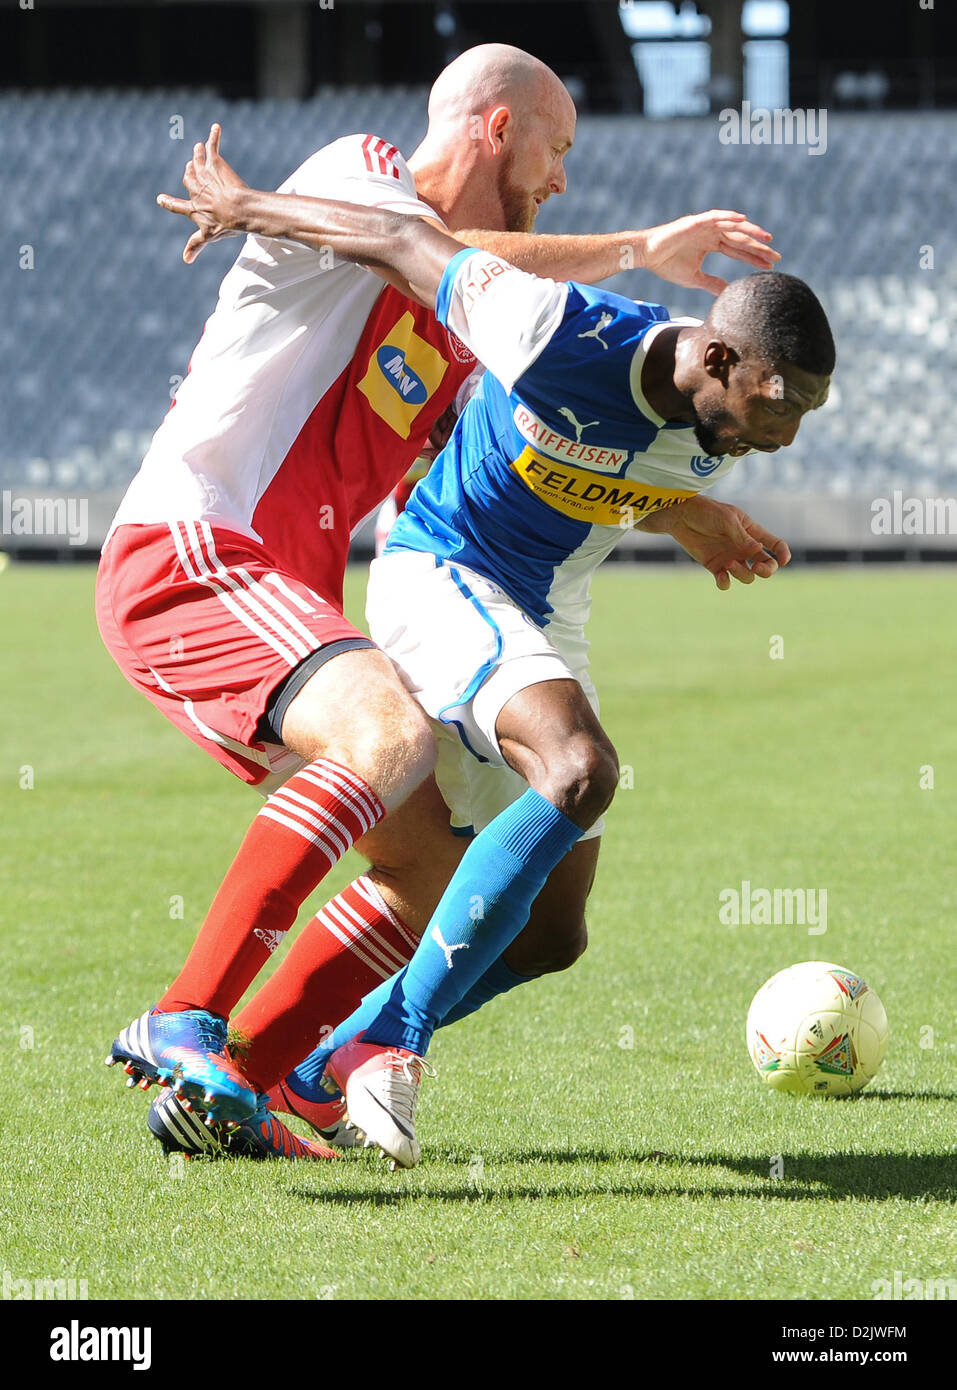 CAPE TOWN, South Africa - Saturday 26 January 2013, Matthew Booth of Ajax Cape Town and Anatole Ngamukol of Grasshopper - Stock Image